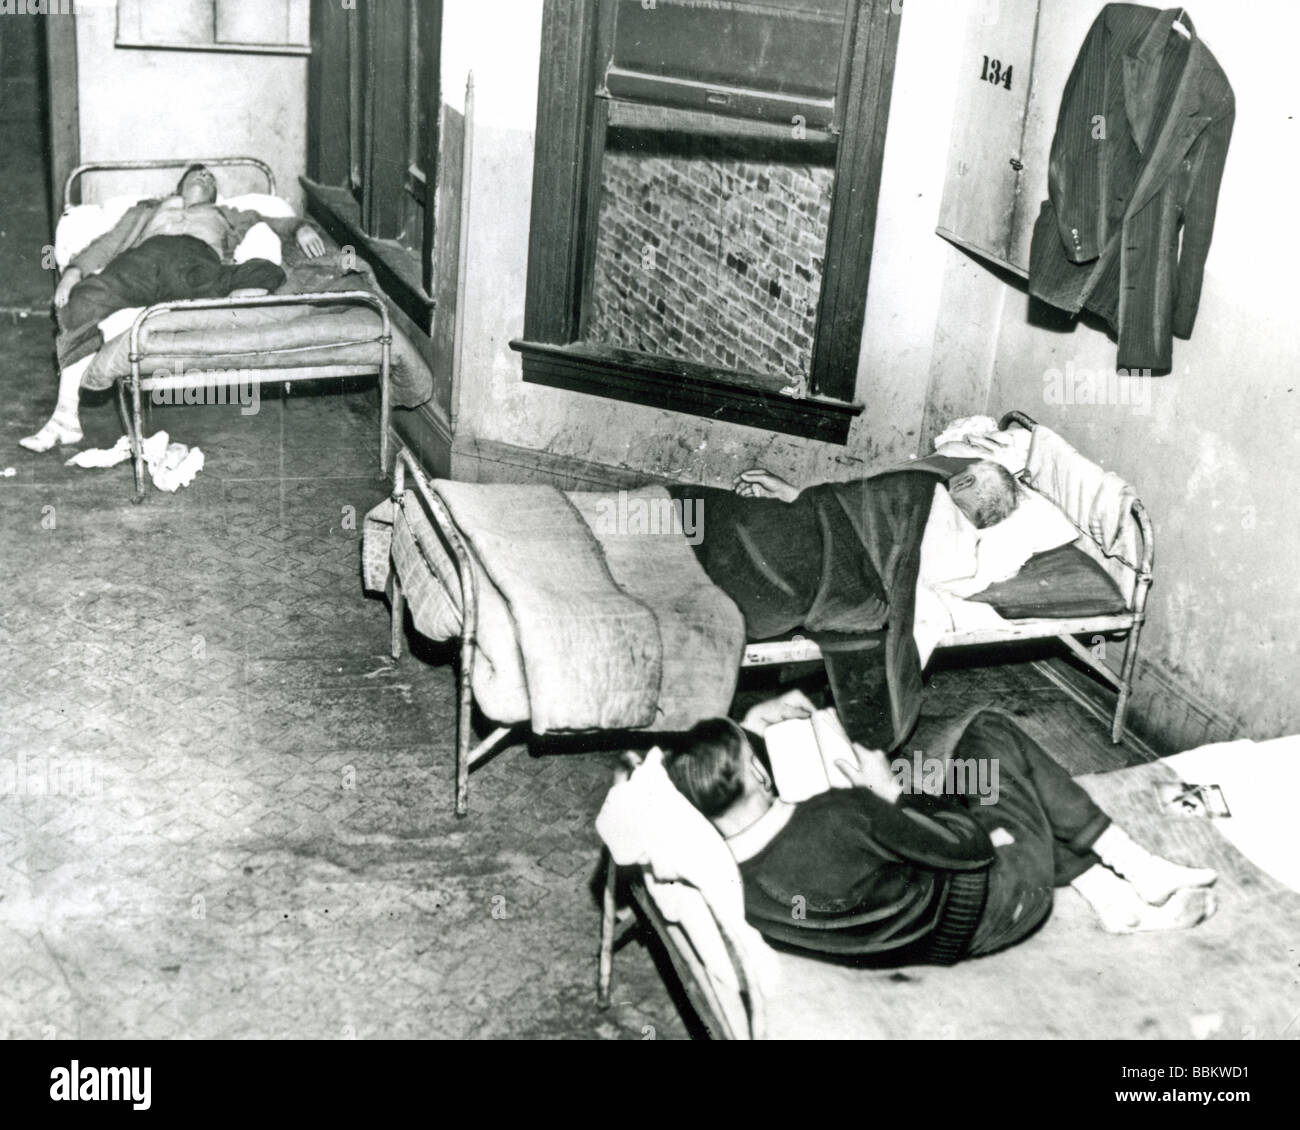 great depression stock photos great depression stock images alamy poverty a chicago flophouse during the great depression of the 1930s stock image